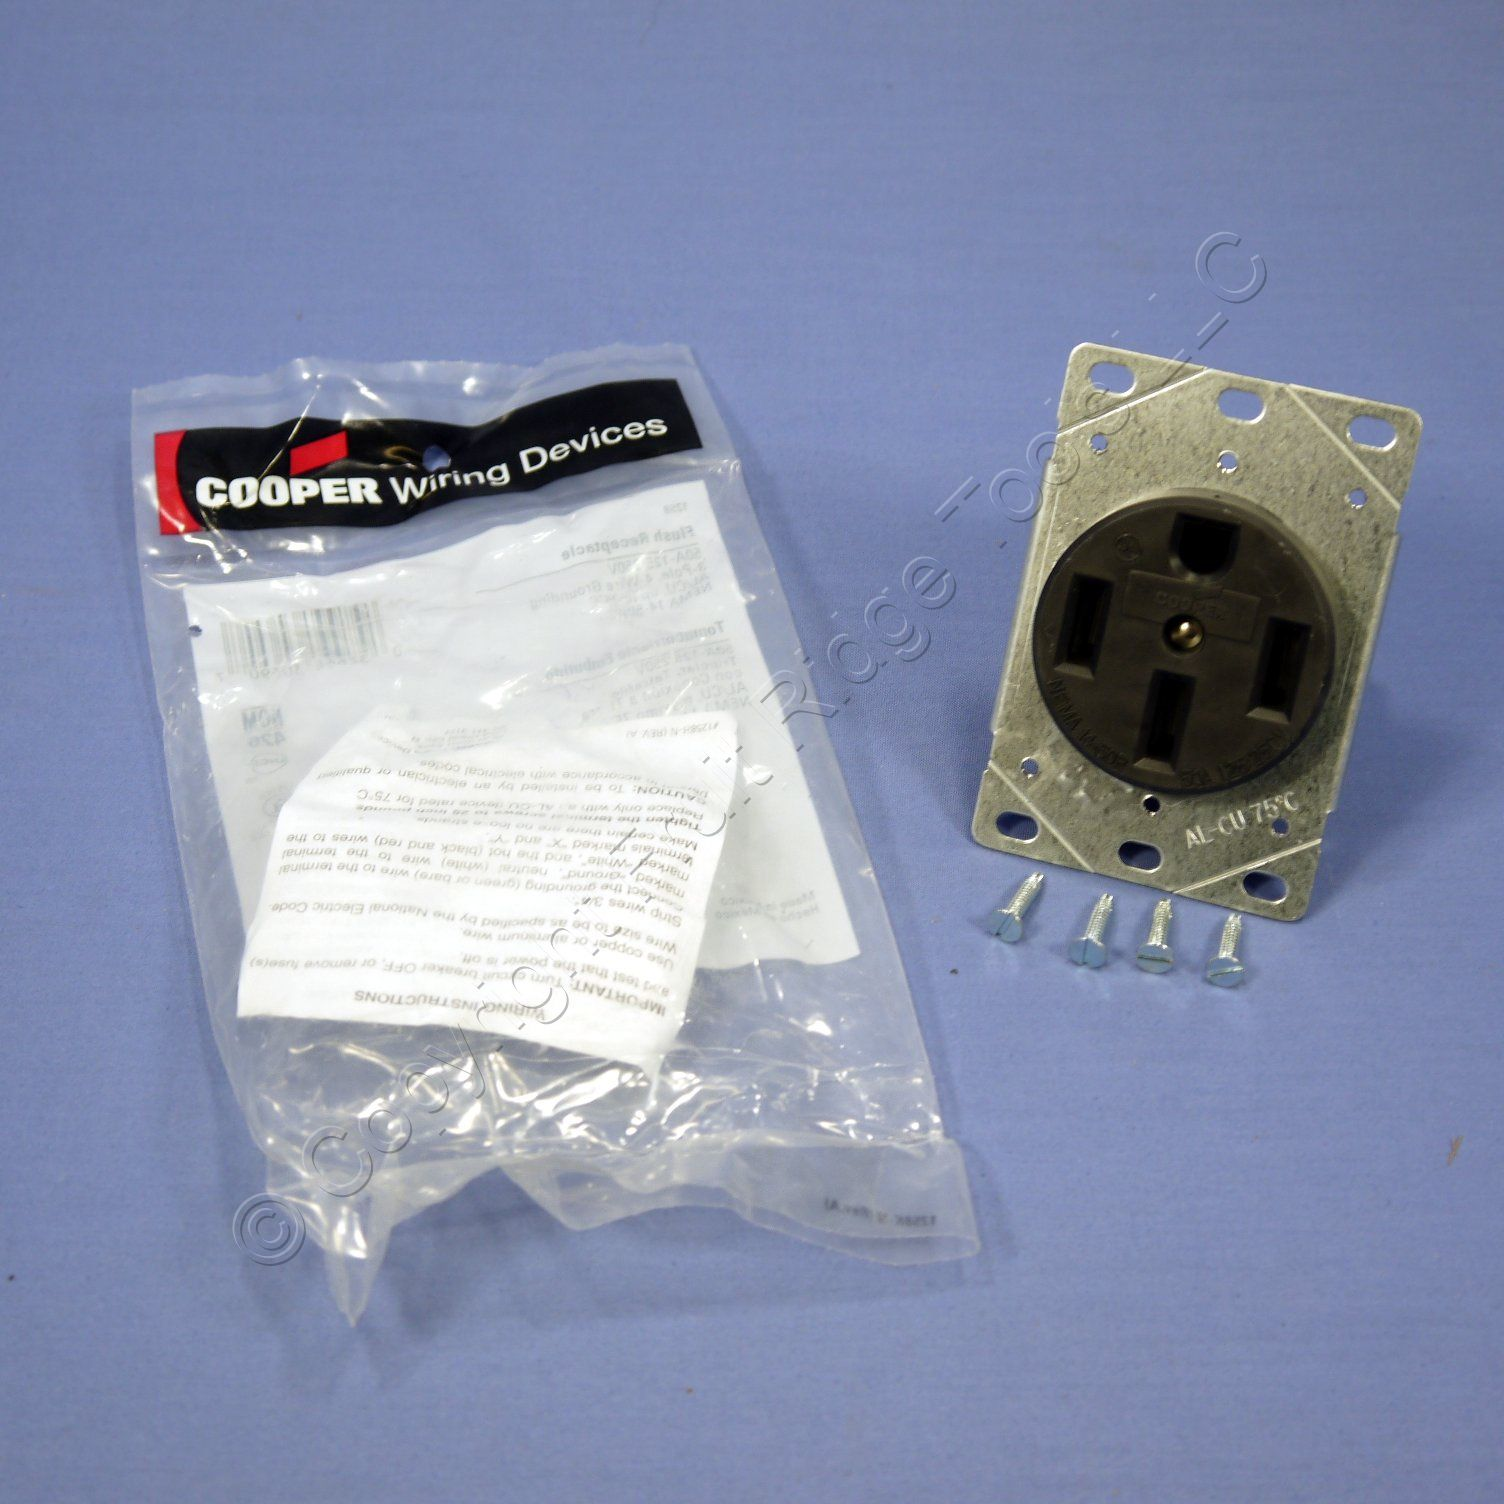 Cooper Flush Range Receptacle Oven Stove Outlet 50a 125 250v 14 50r Wiring Devices 50amp Flushmount Appliance Electrical 1258 Bagged